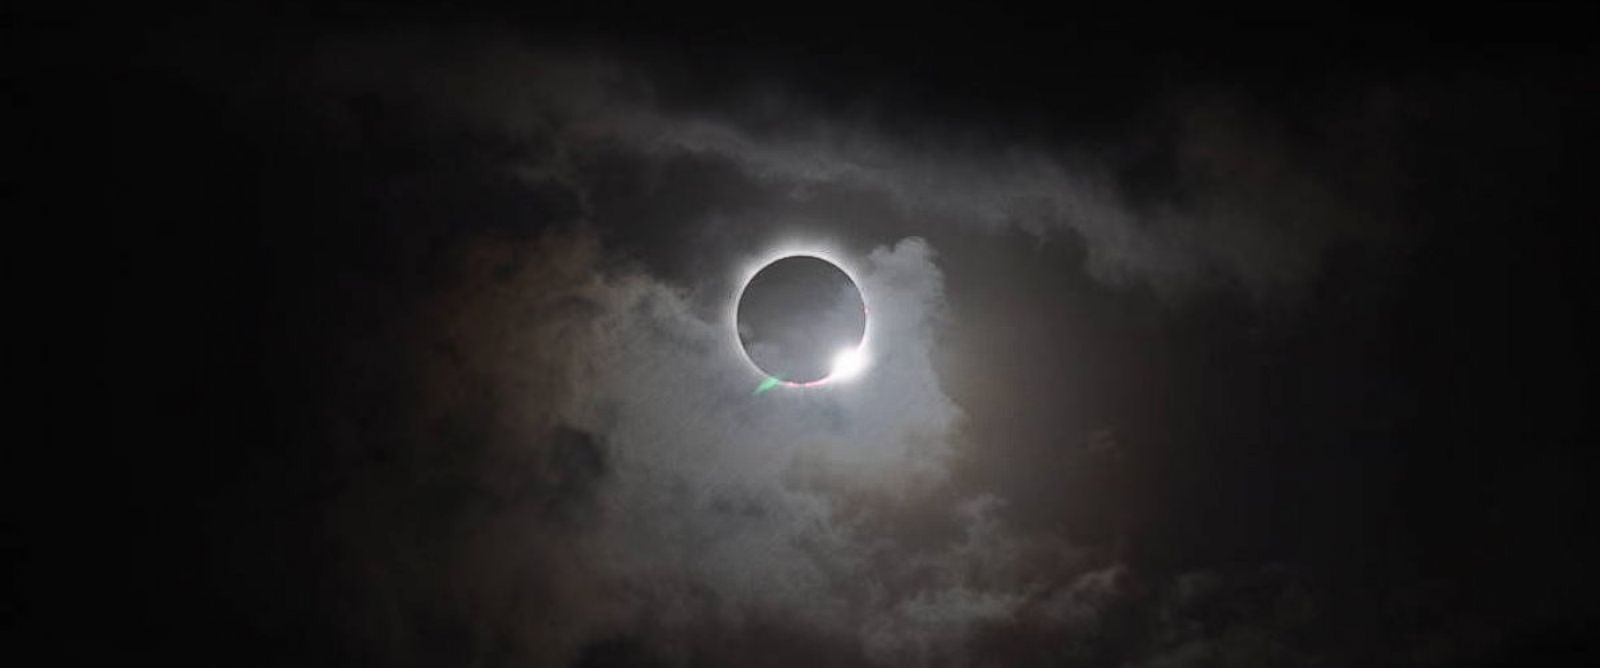 PHOTO: During total solar eclipses, such as this one seen from the northern tip of Australia, Nov. 13, 2012, the light halo of the sun's atmosphere, called the corona, can be seen.